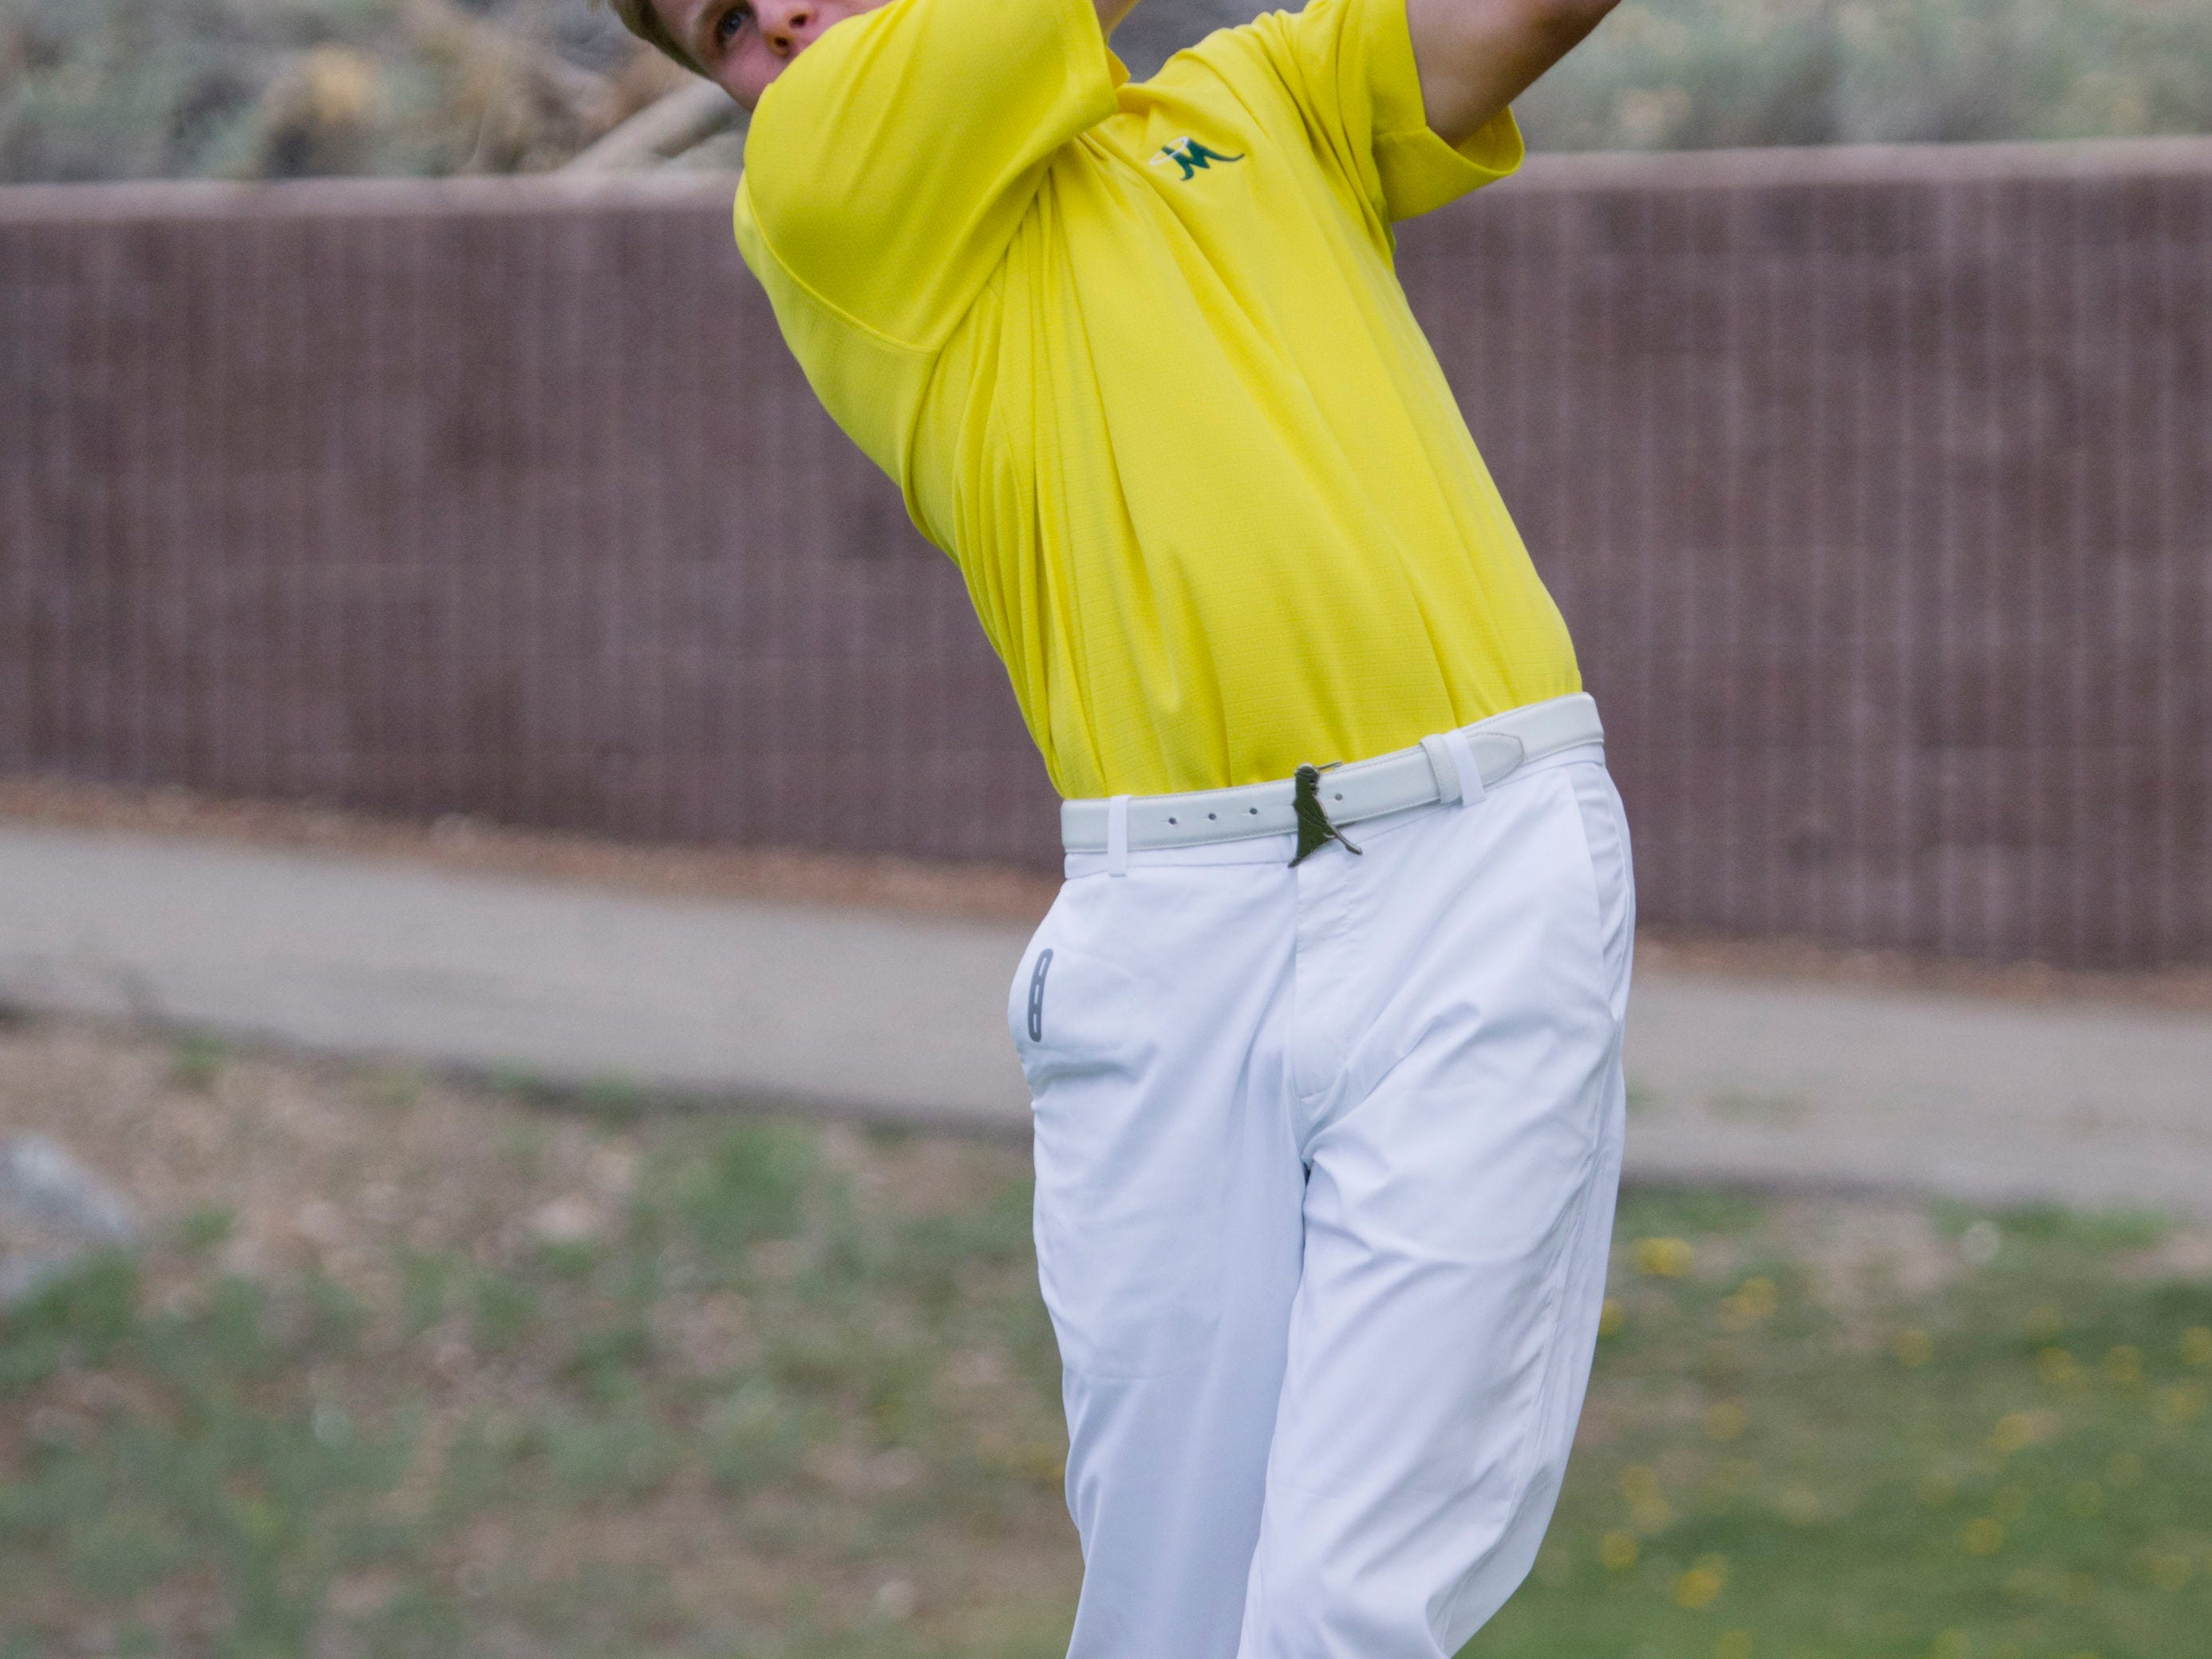 Bishop Manogue's Stephen Osborne tees off at Lakeridge Golf Course on April 11, 2014.